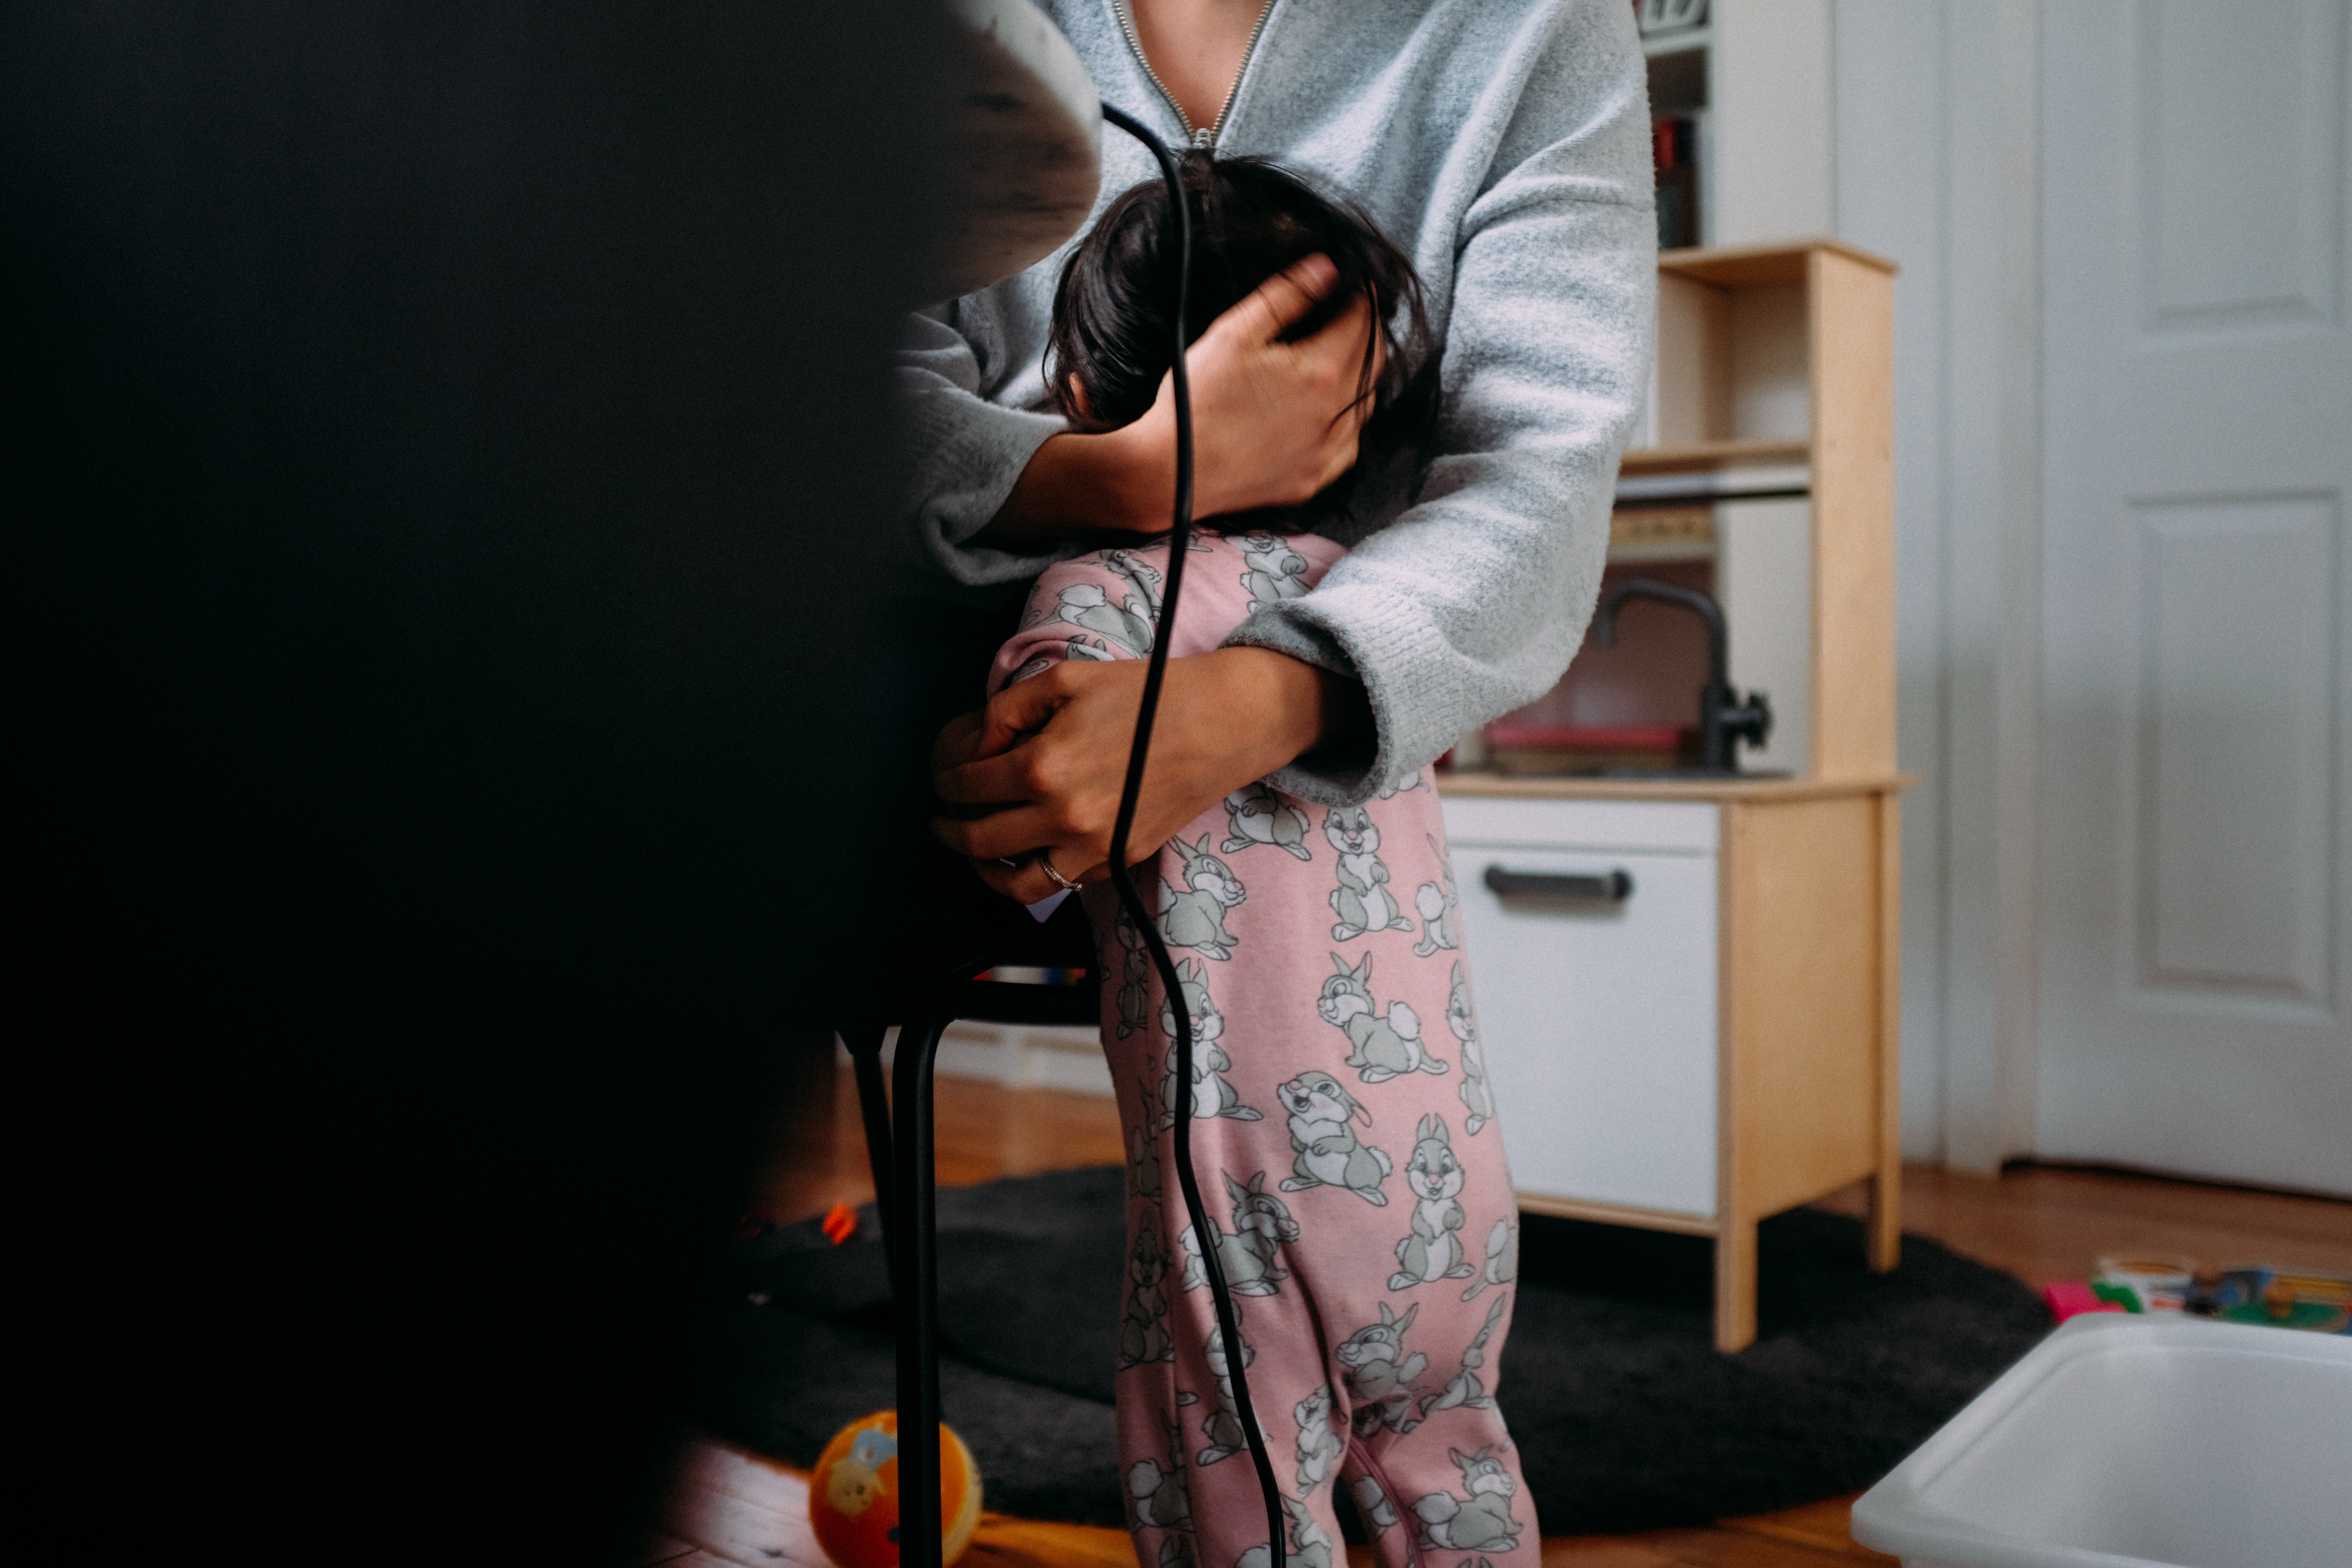 A parent cradles the head of a toddler wearing pink footie pajamas.